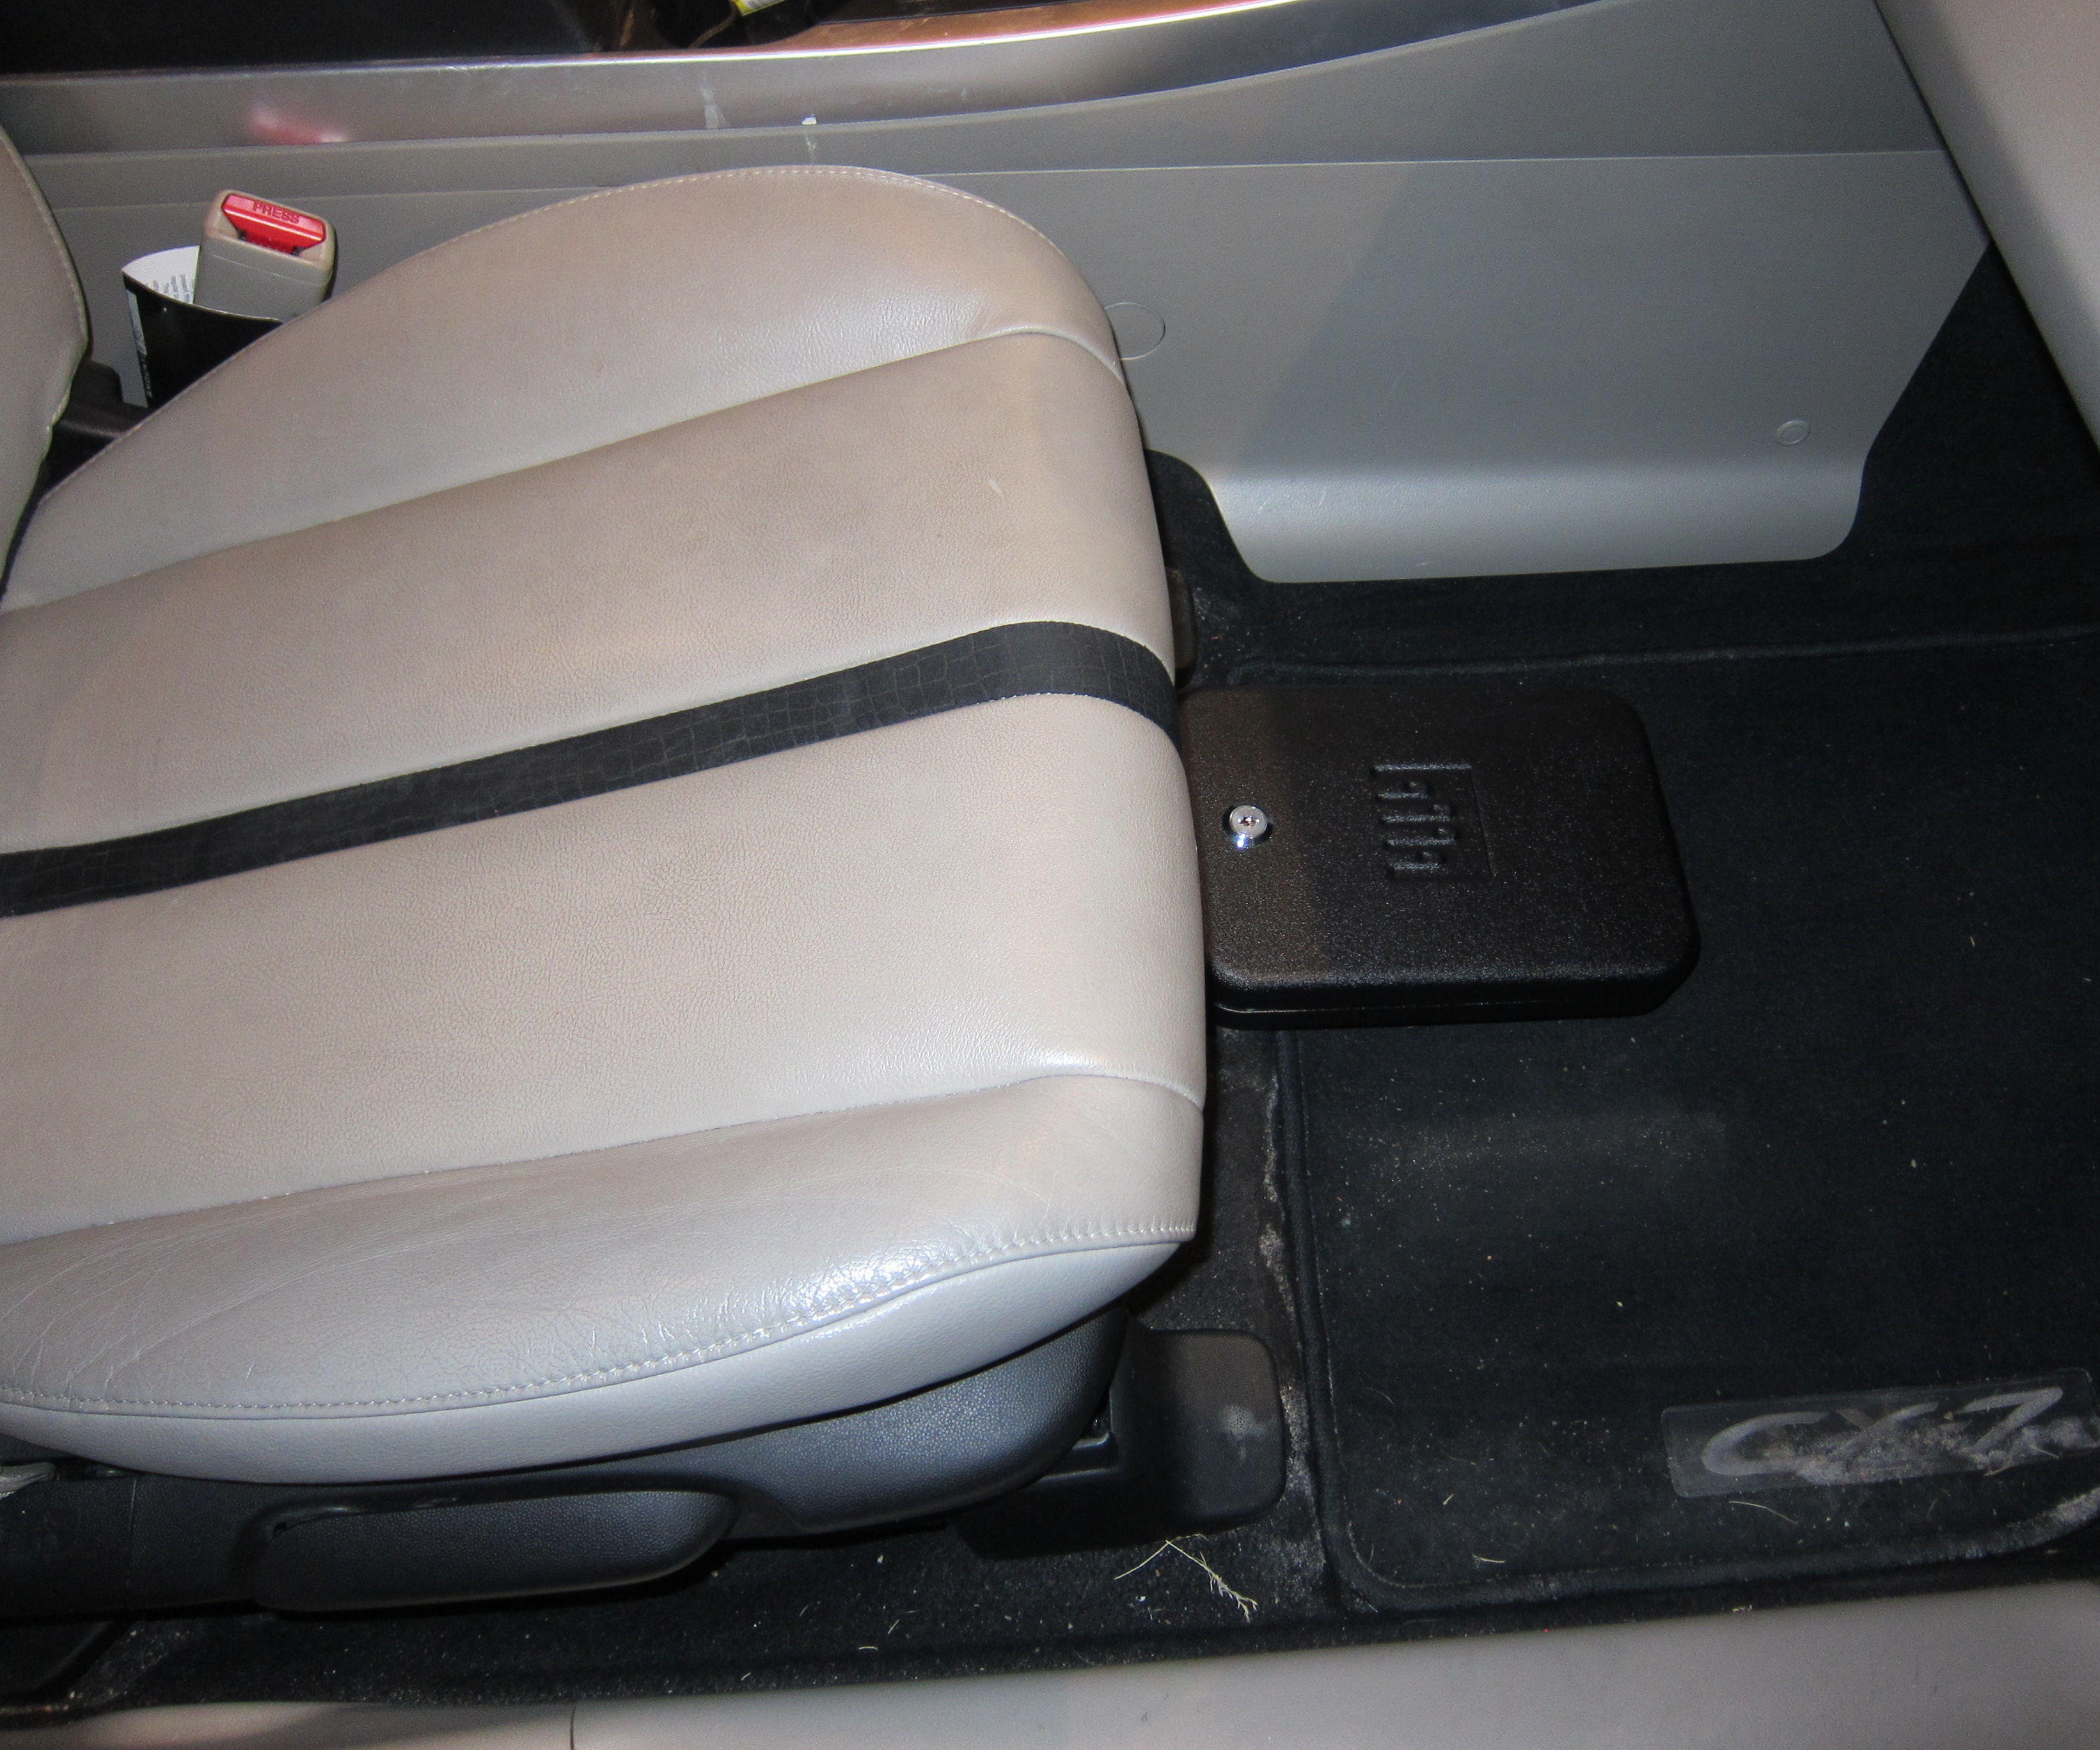 Hidden Sliding Vehicle Lock Box : 12 Steps (with Pictures) - Instructables